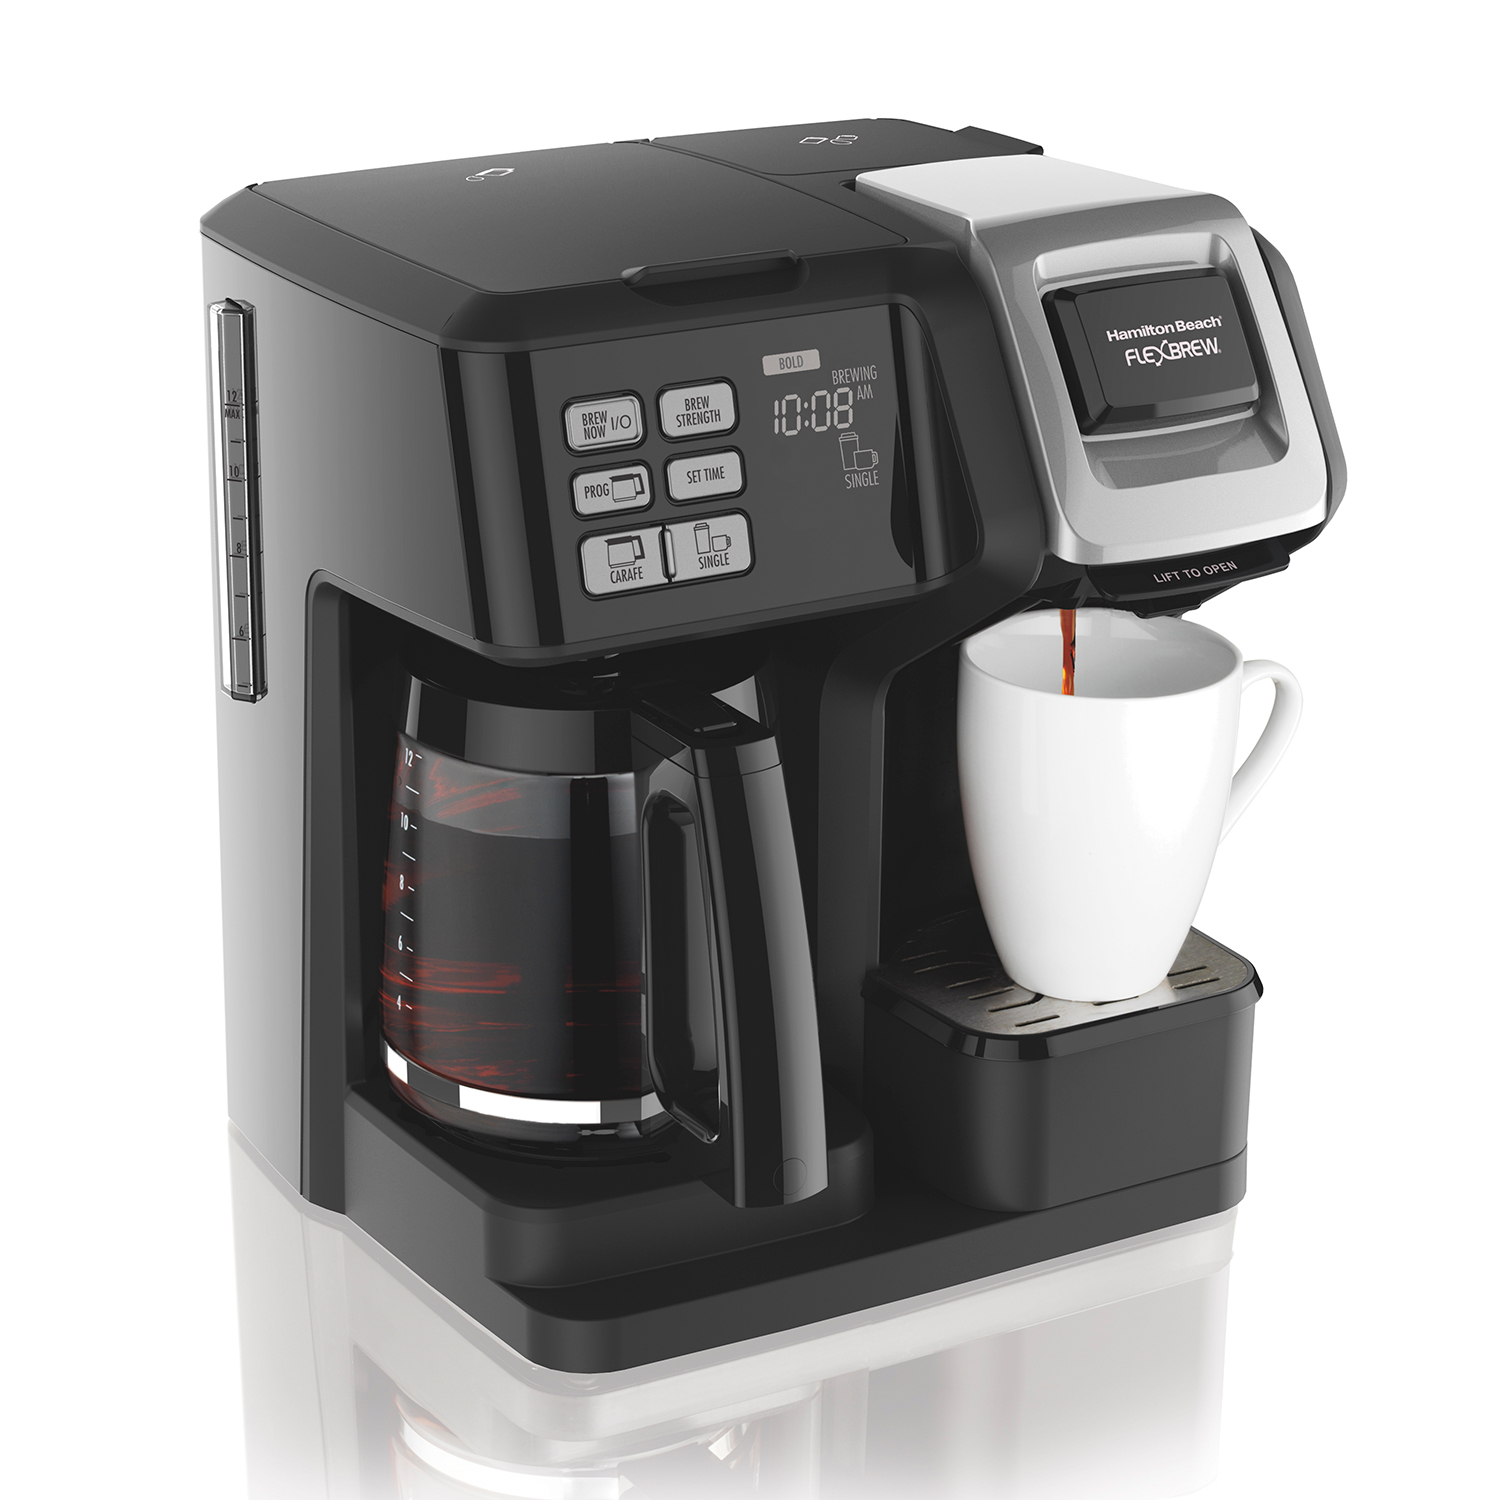 Coffee Maker K Cup And Pot Hamilton Beach Flexbrewr 2 Way Coffee Maker 49974